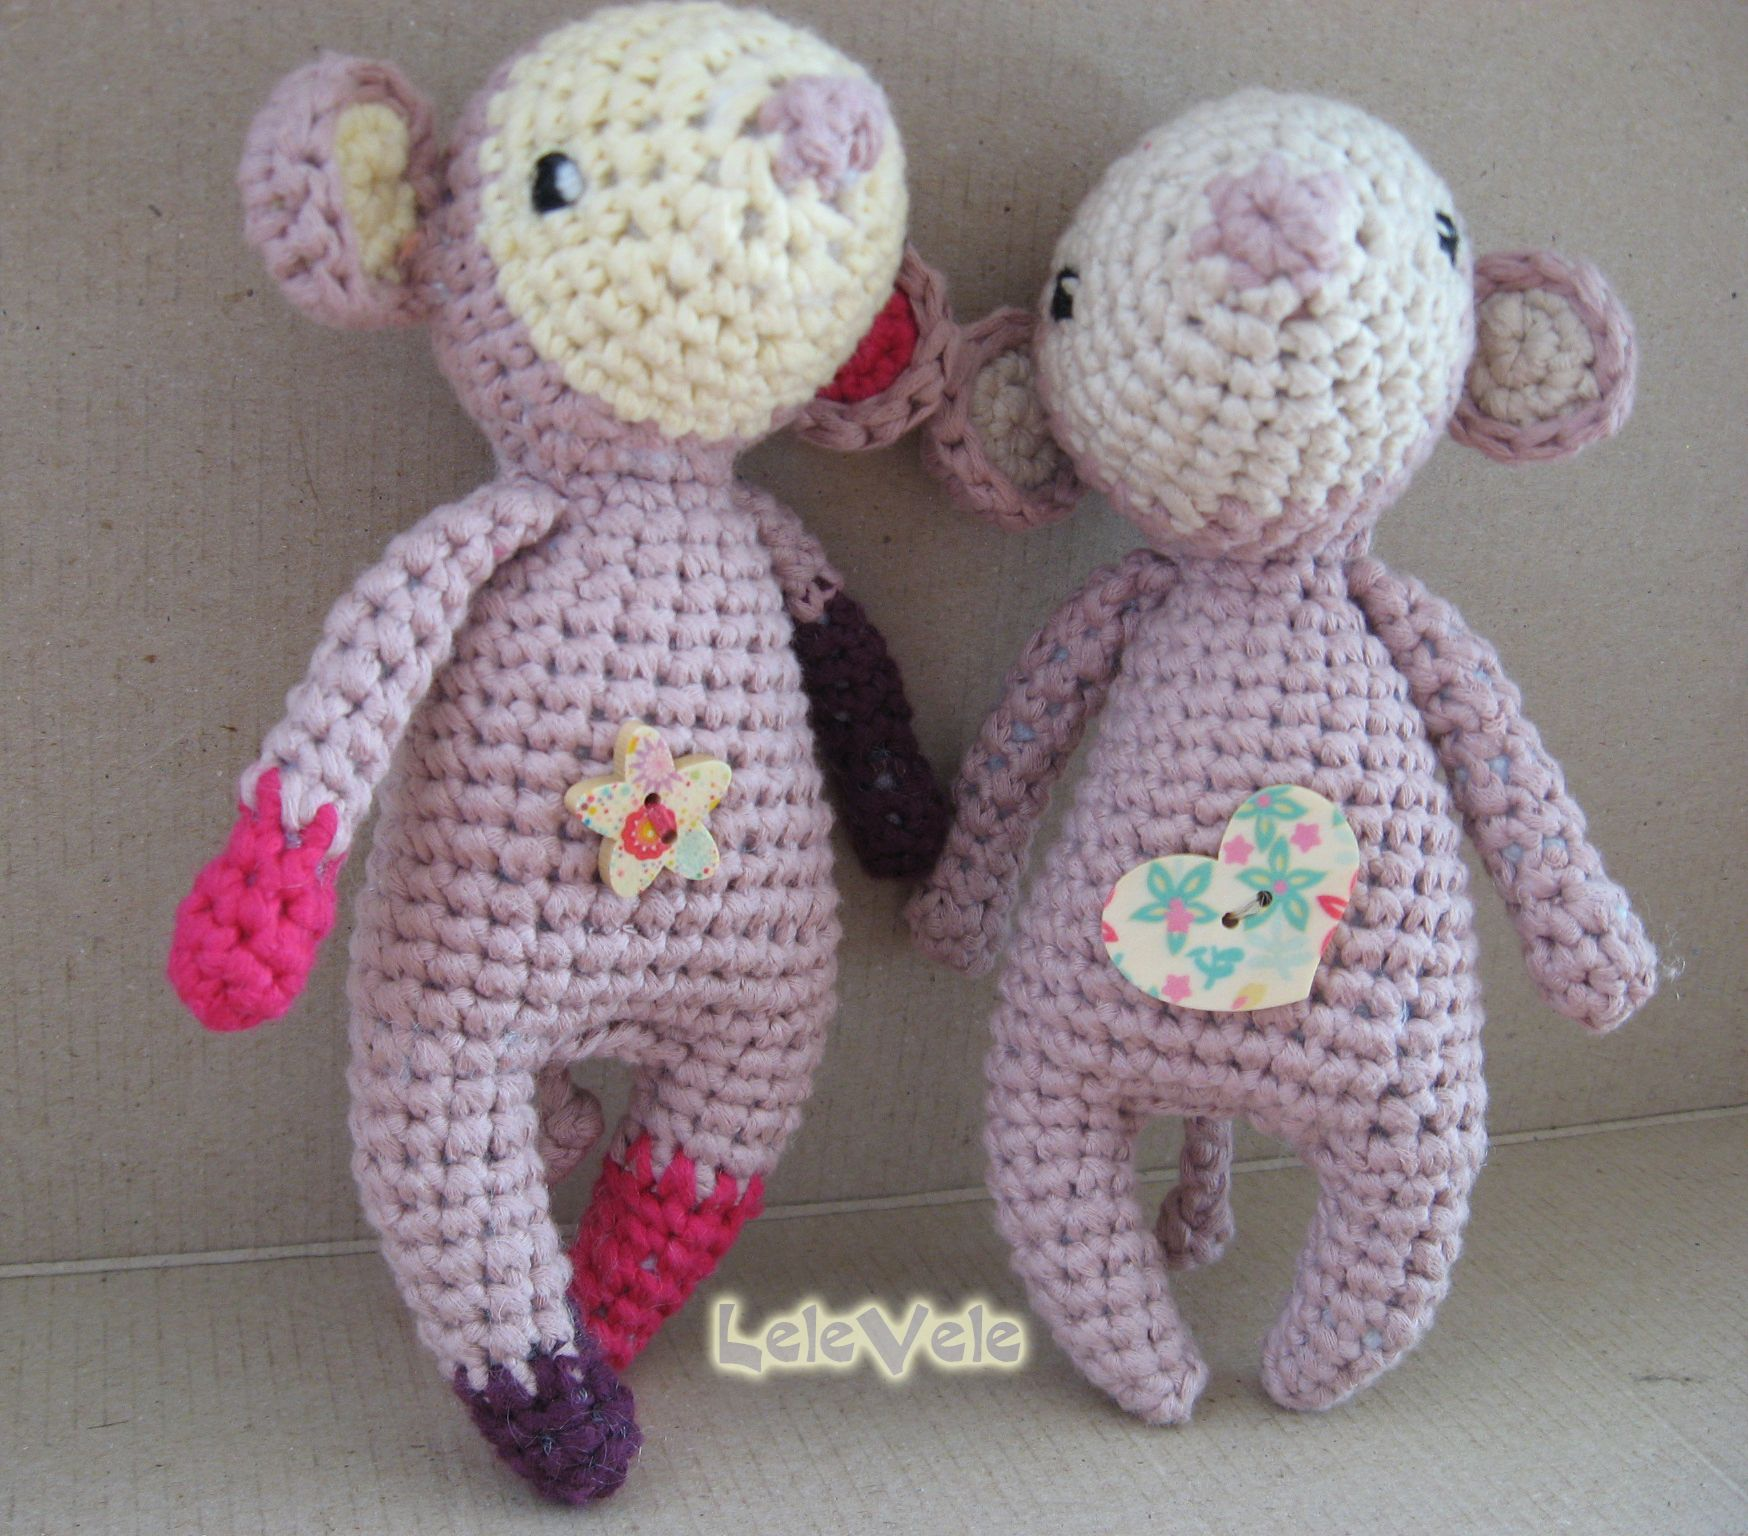 Twins Mia&Sia  Made with love from: https://www.facebook.com/LeleVele-handmade-1939438202993288/